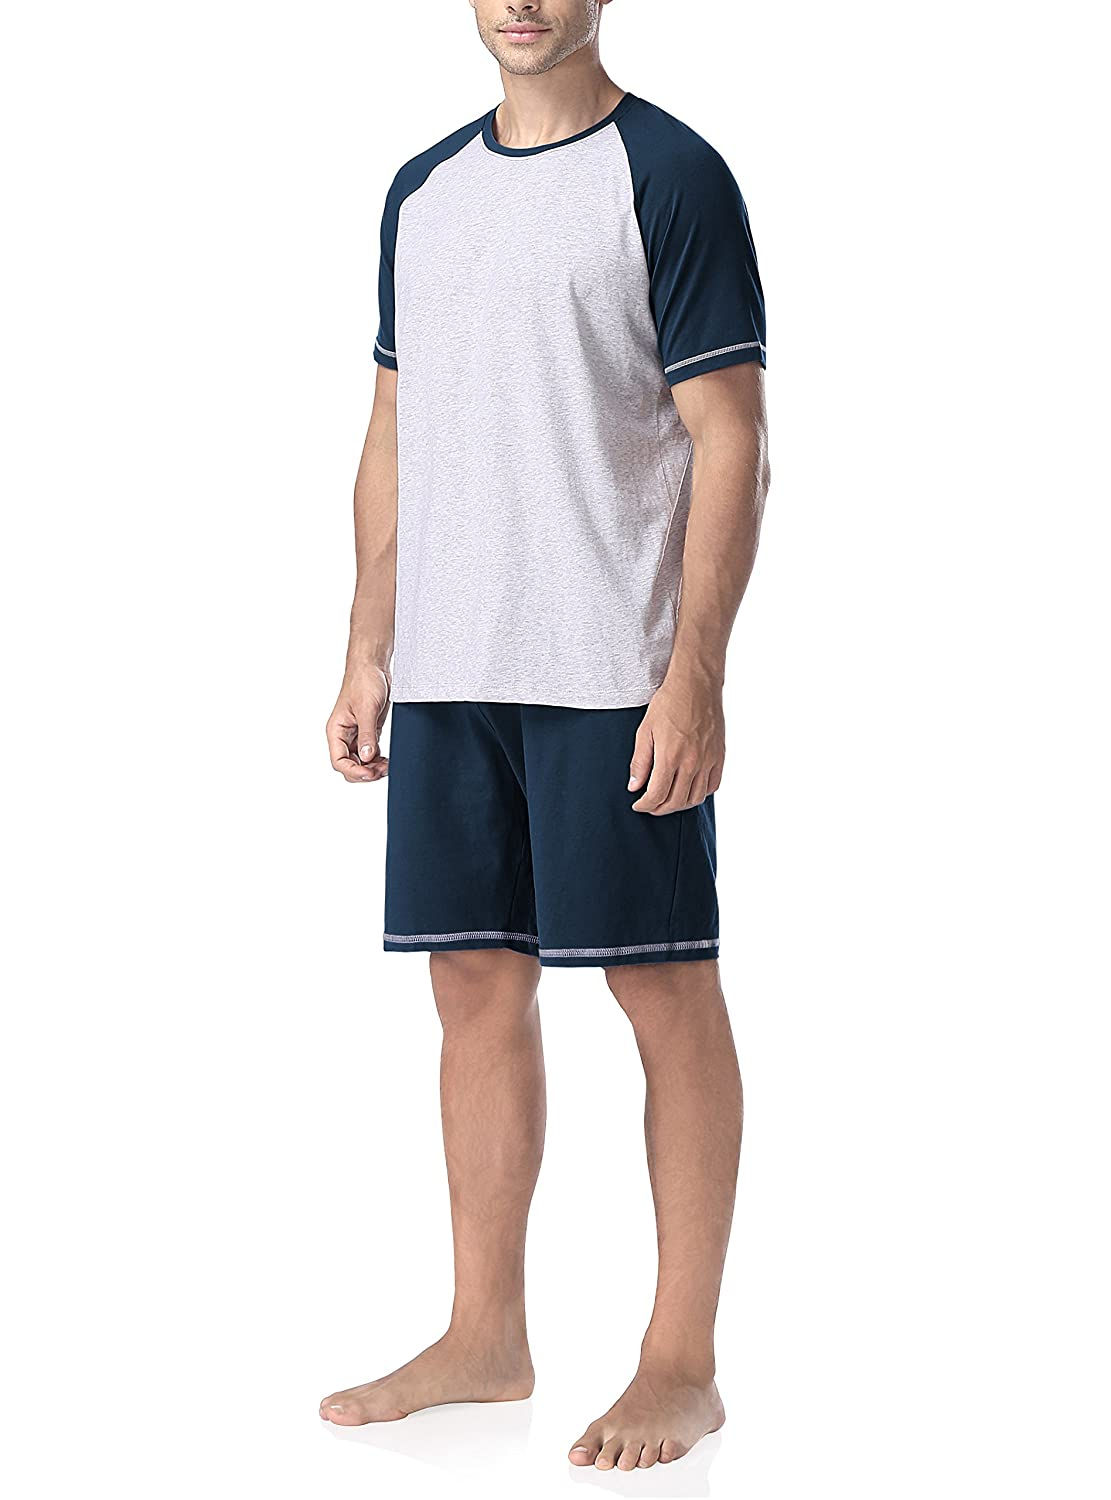 David Archy Men's Cotton Raglan Short Sleeve Top and Bottoms Pajama Sets CN-Smashing